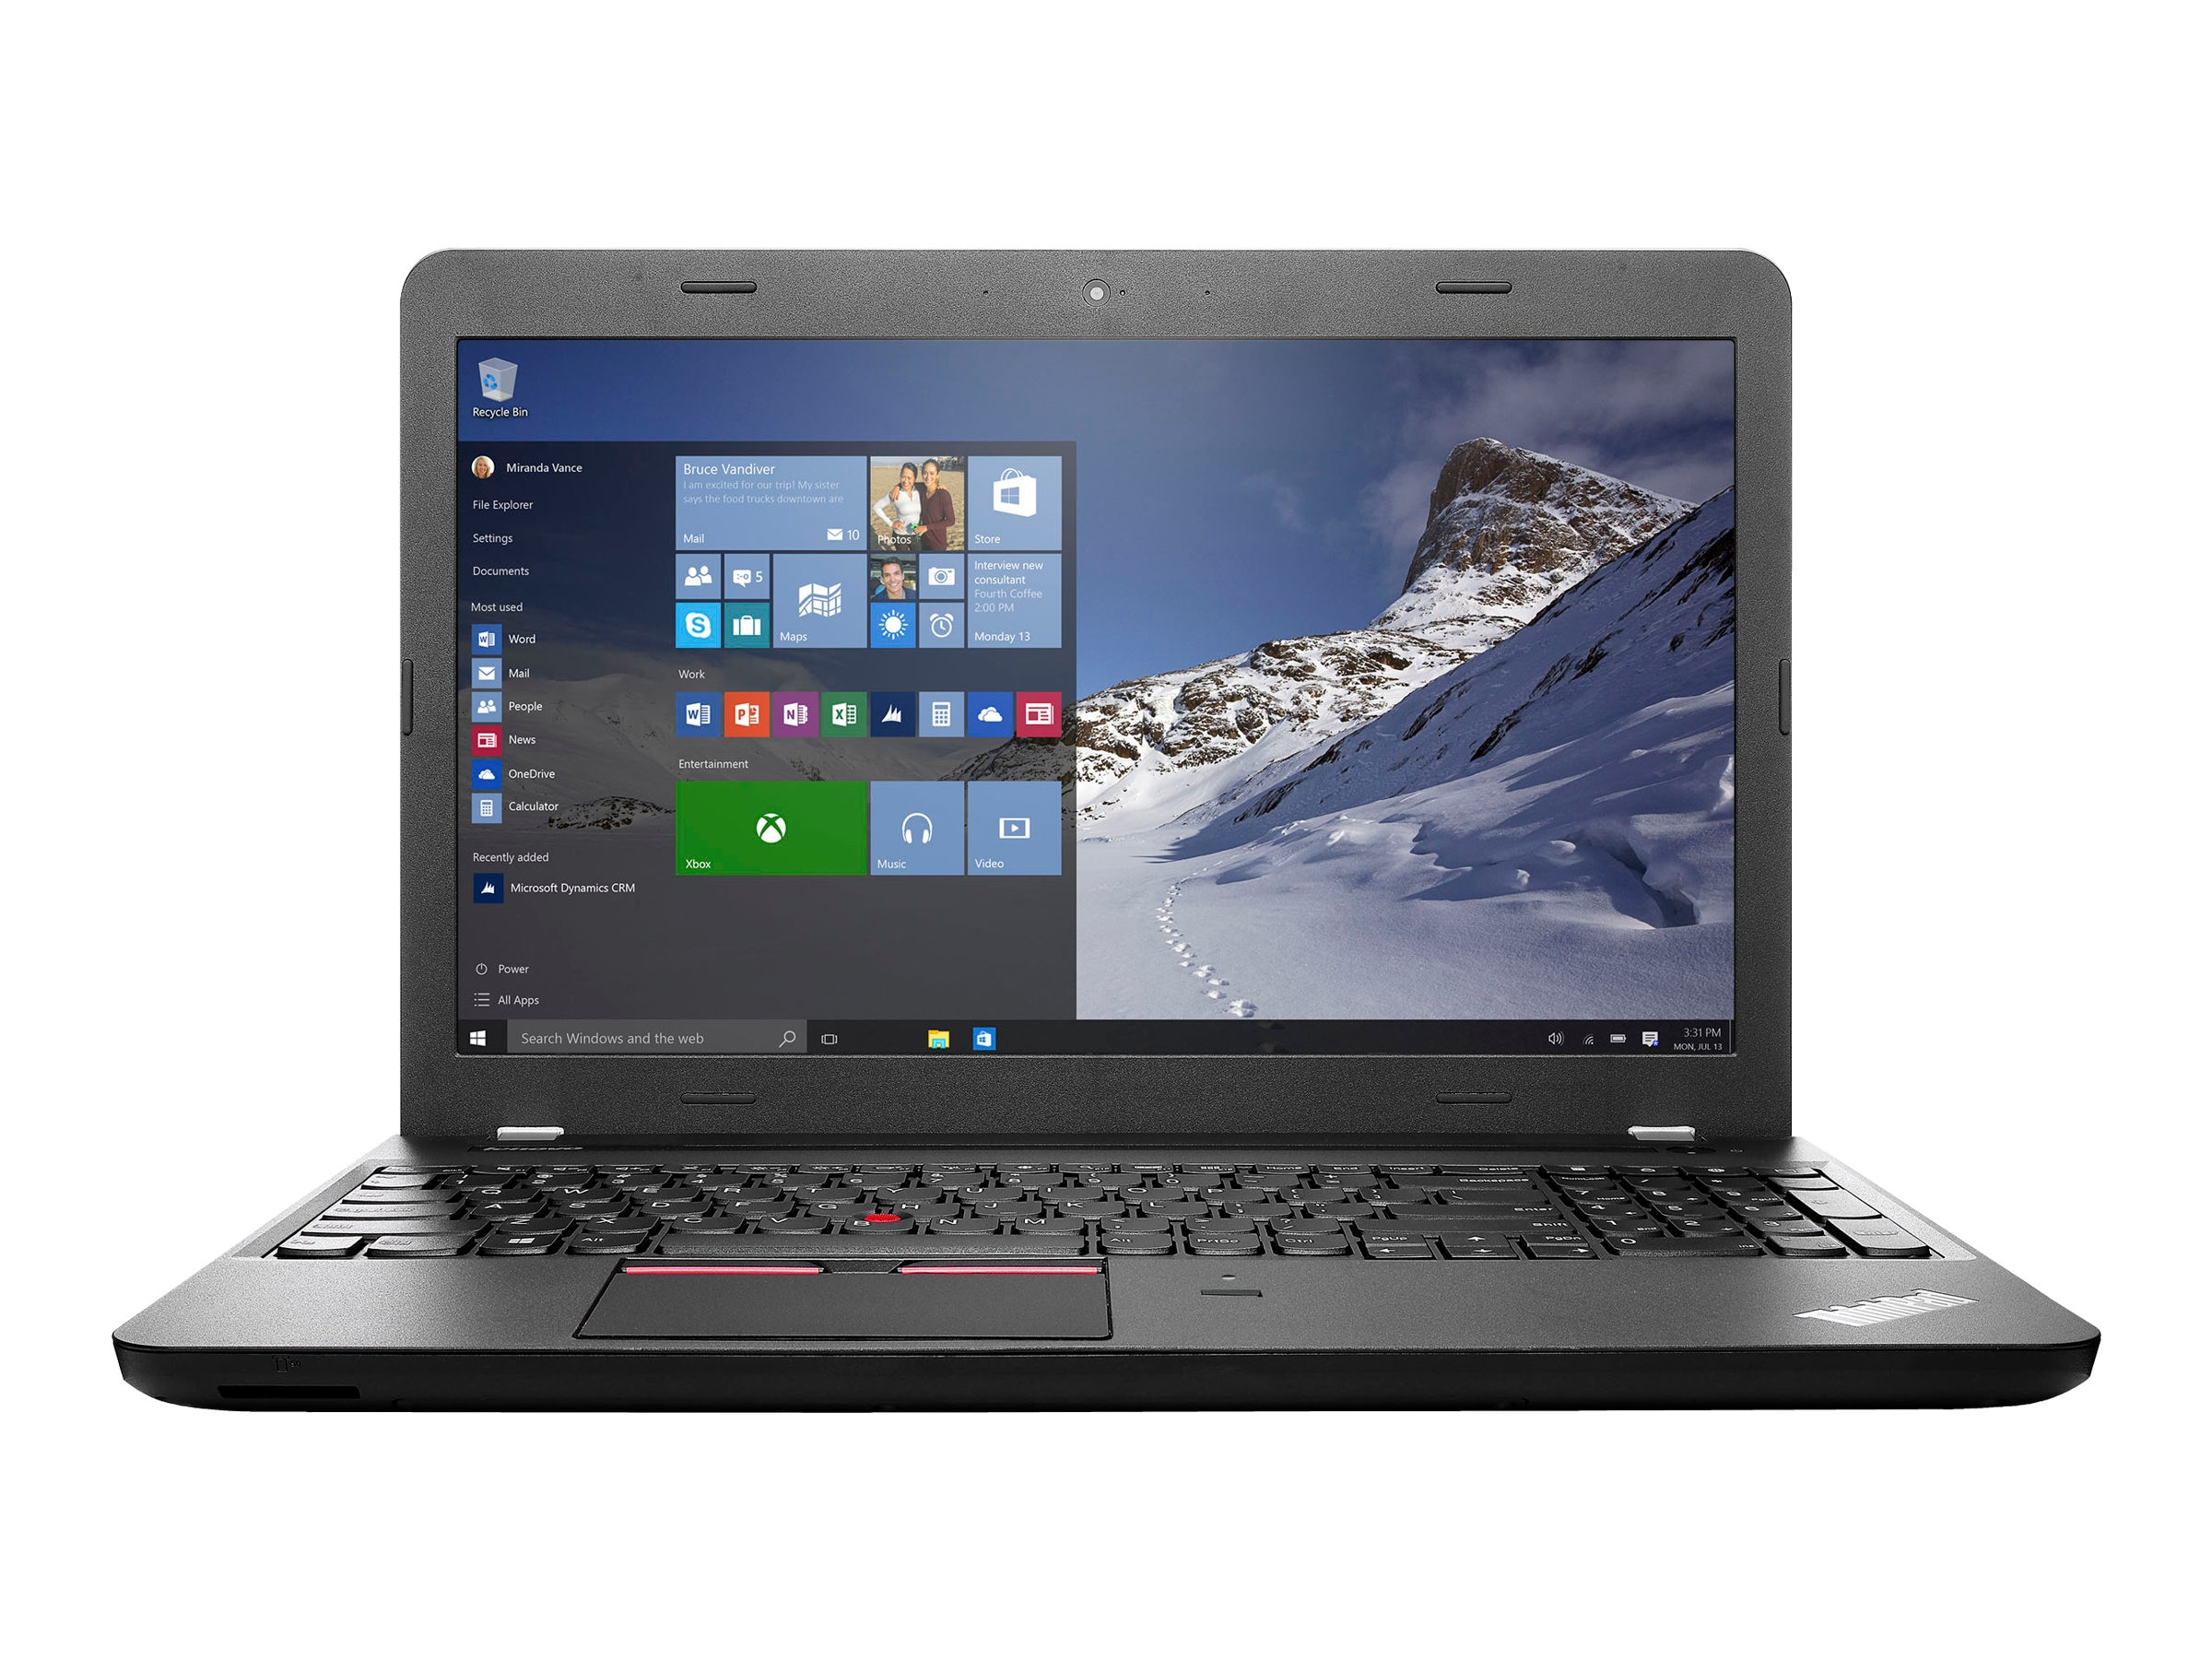 Lenovo TopSeller ThinkPad E560 2.3GHz Core i5 15.6in display, 20EV002FUS, 30817783, Notebooks